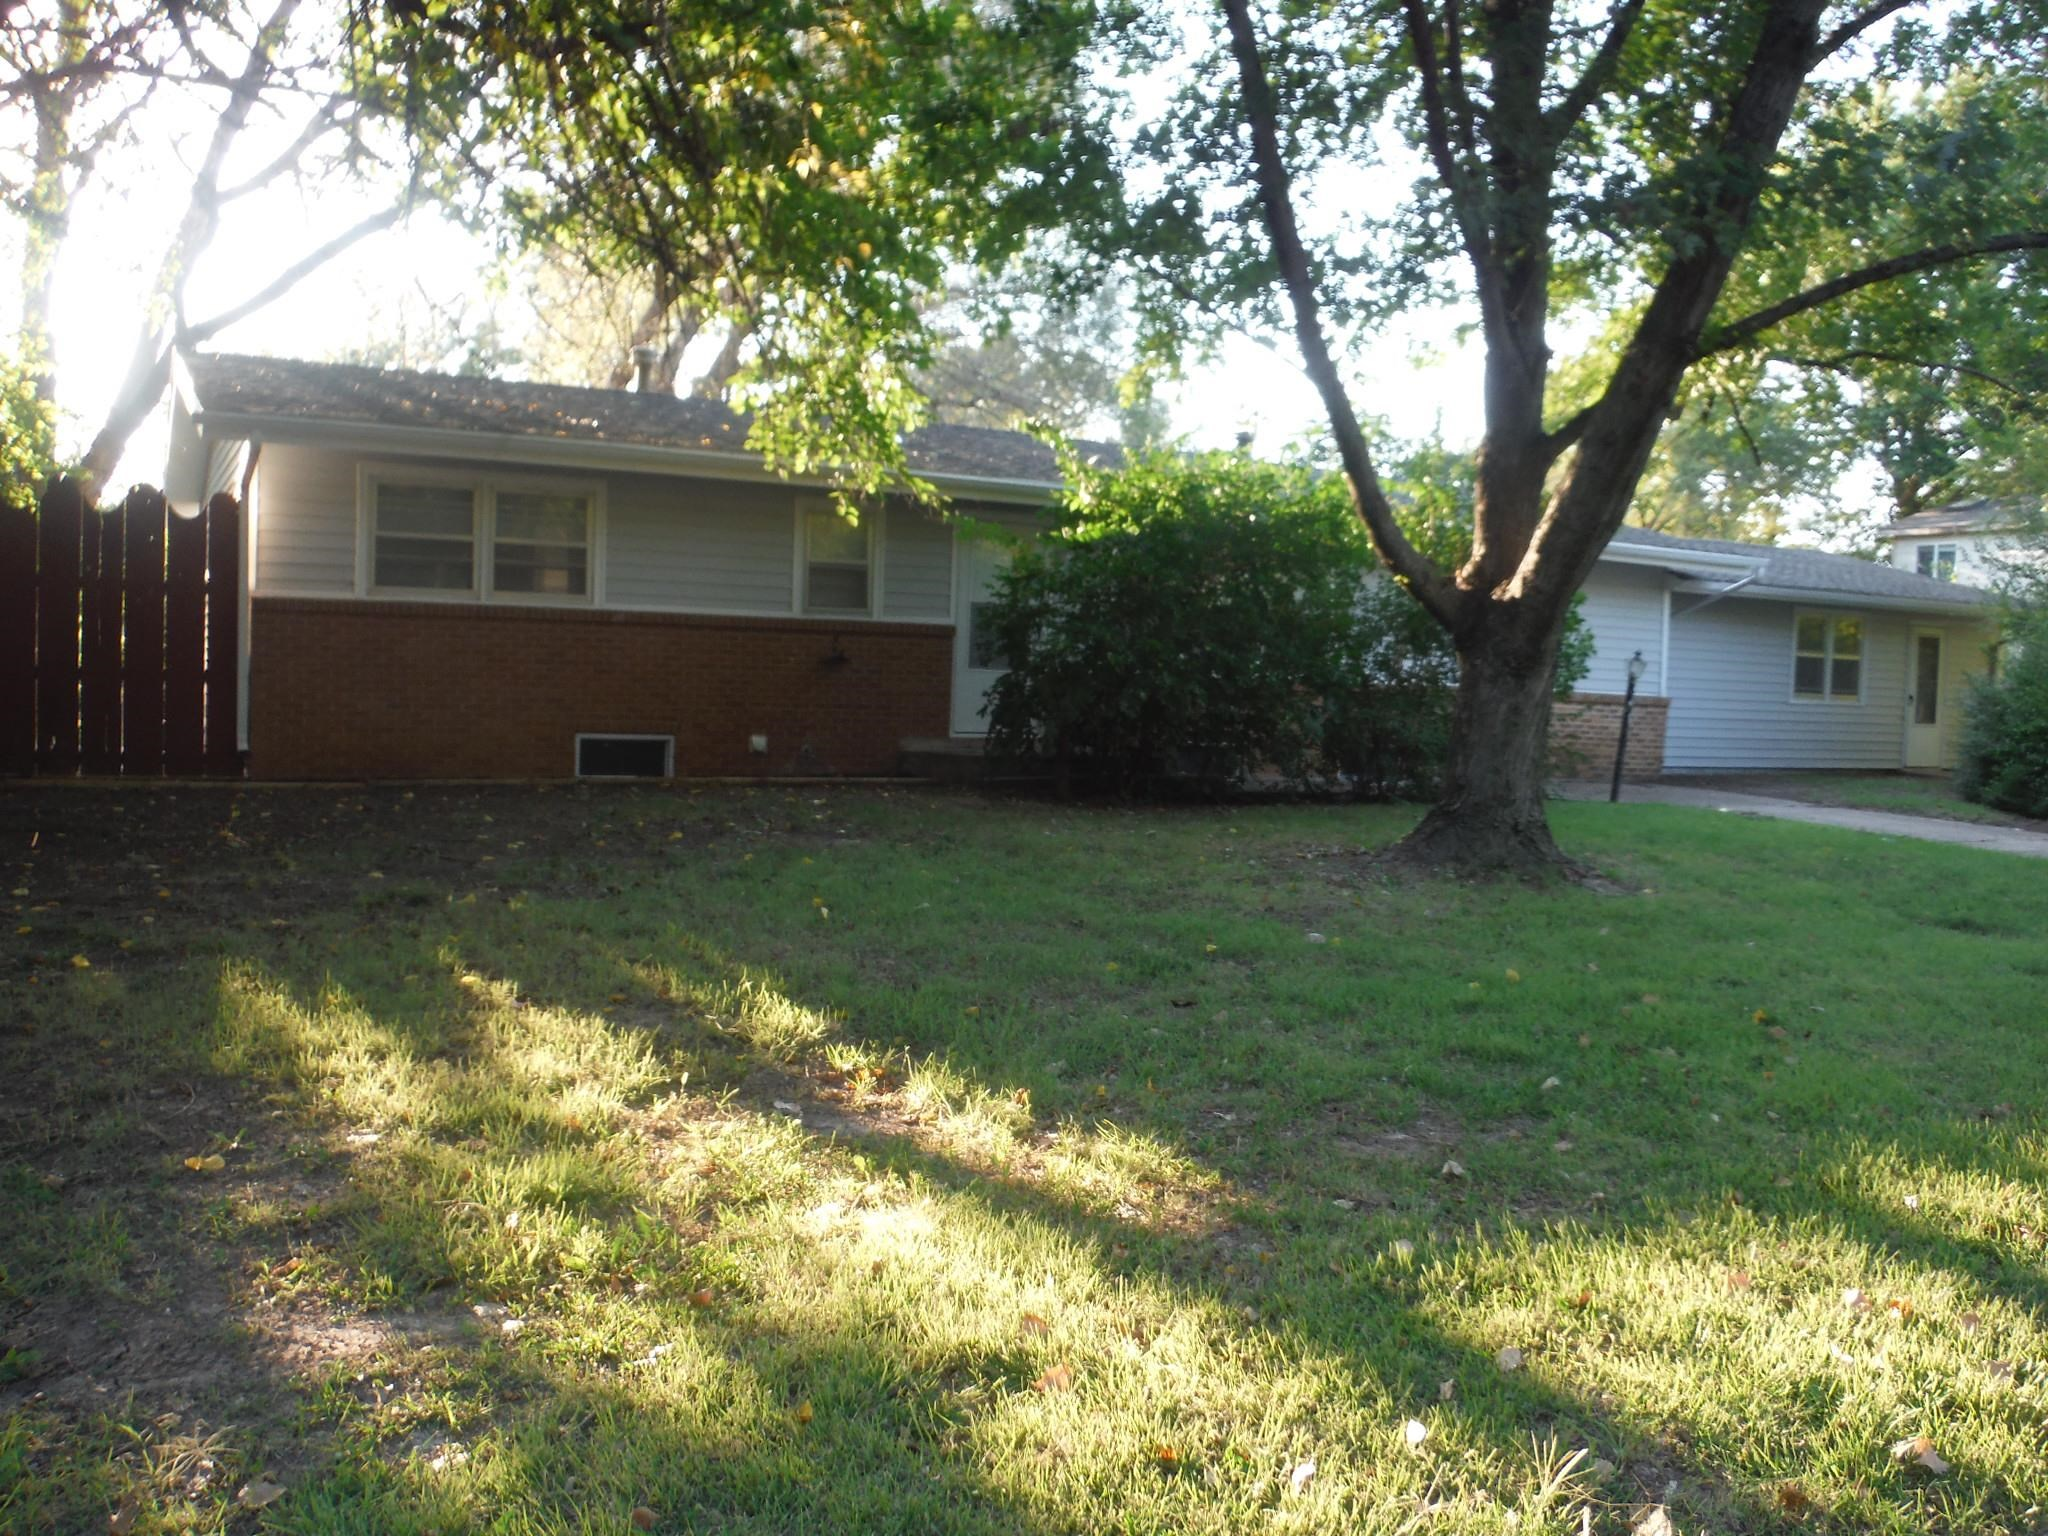 Remodeled & updated 3 bedroom home in Park City. Granite counters in the kitchen with new appliances